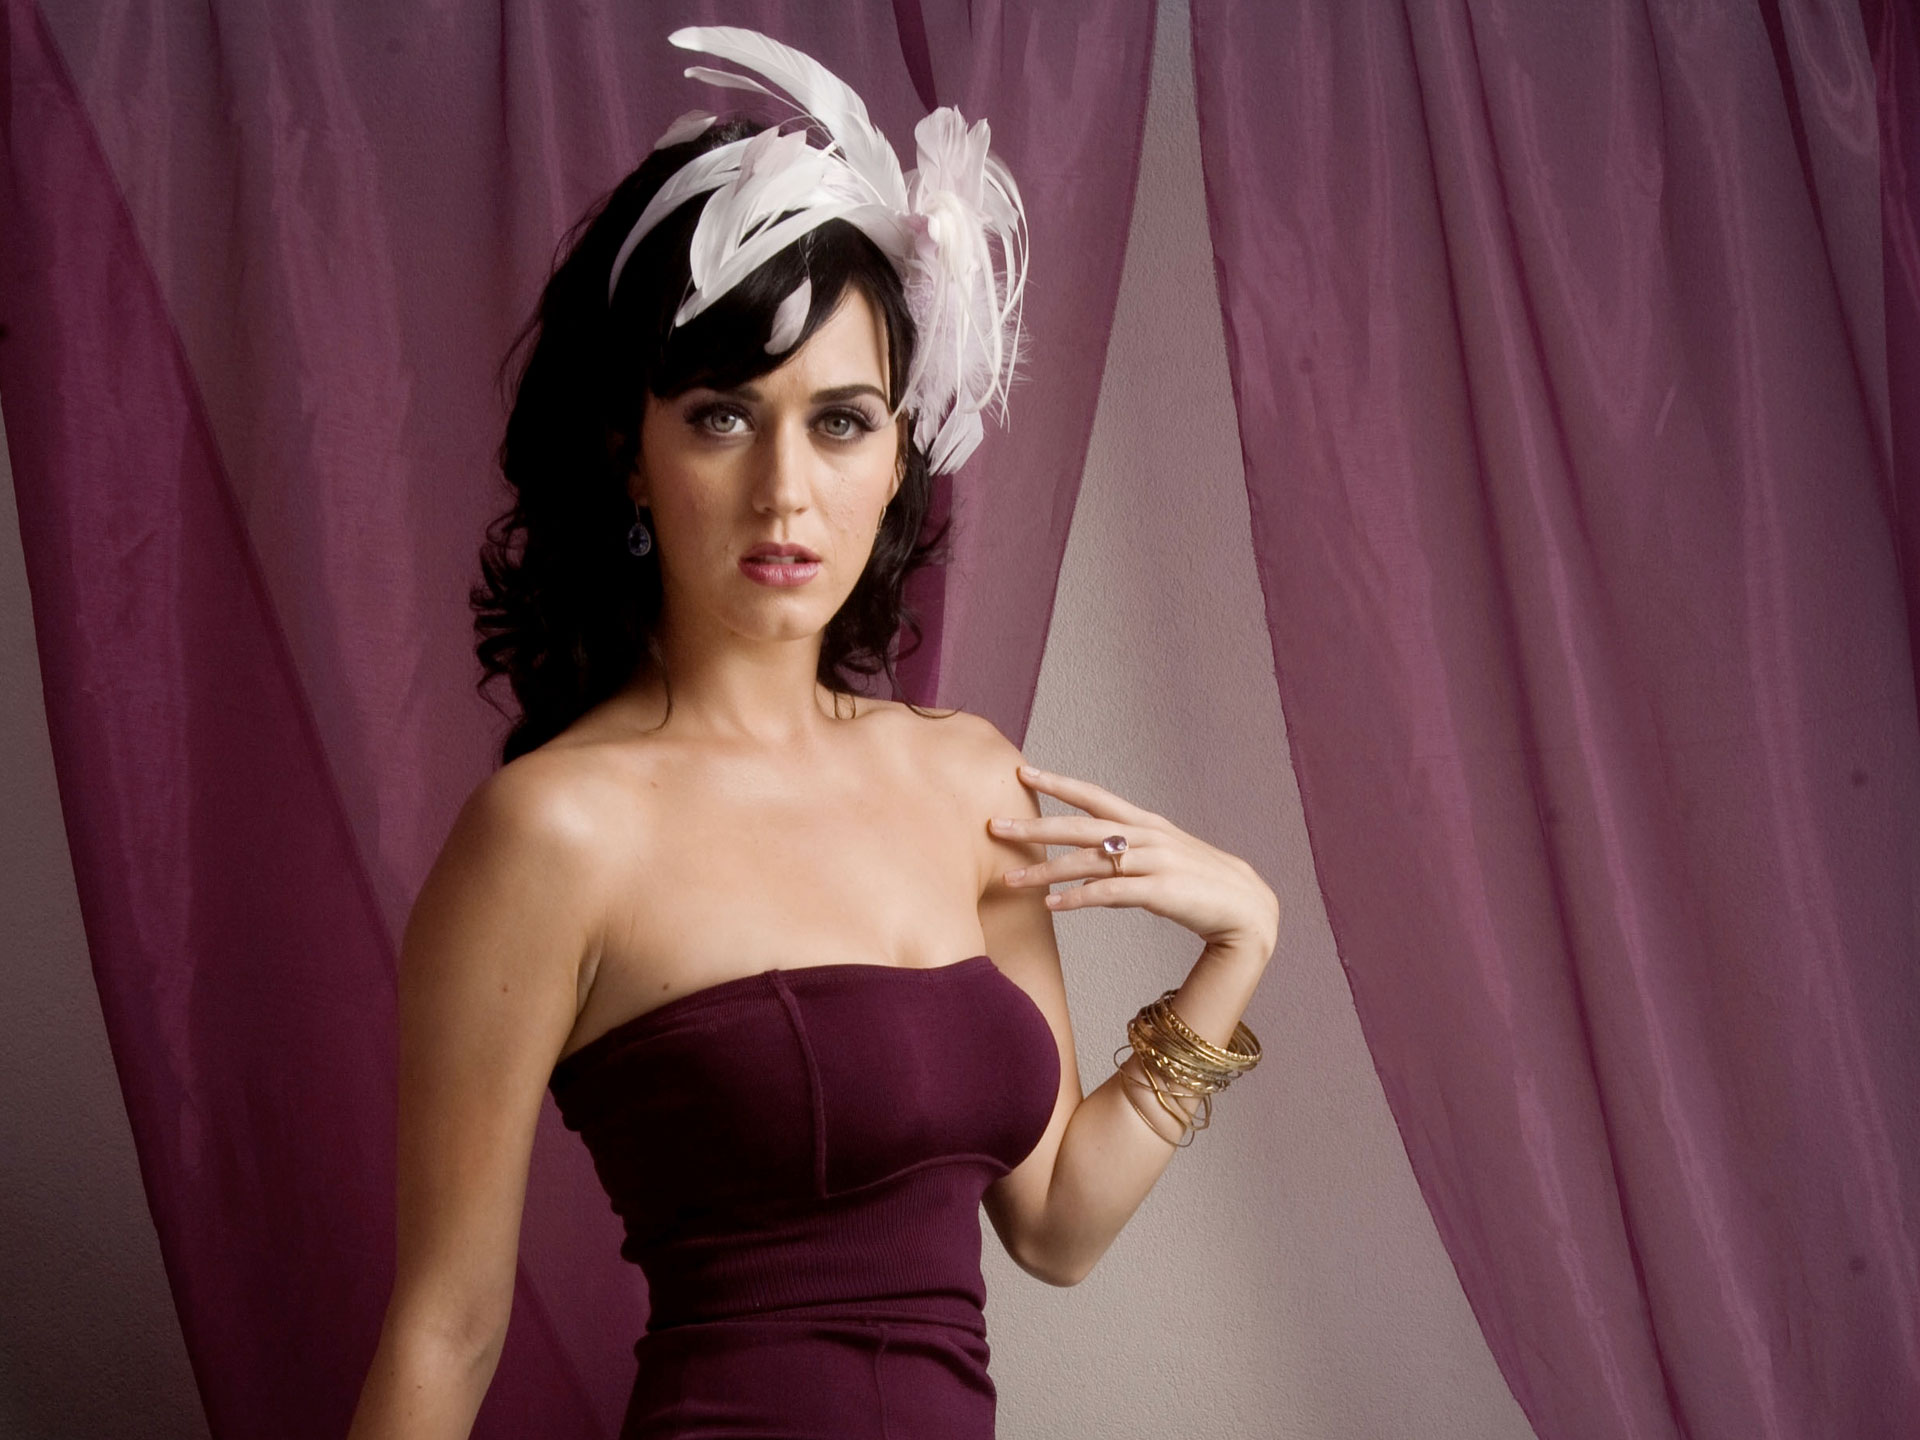 Katy Perry 26 485.25 Kb